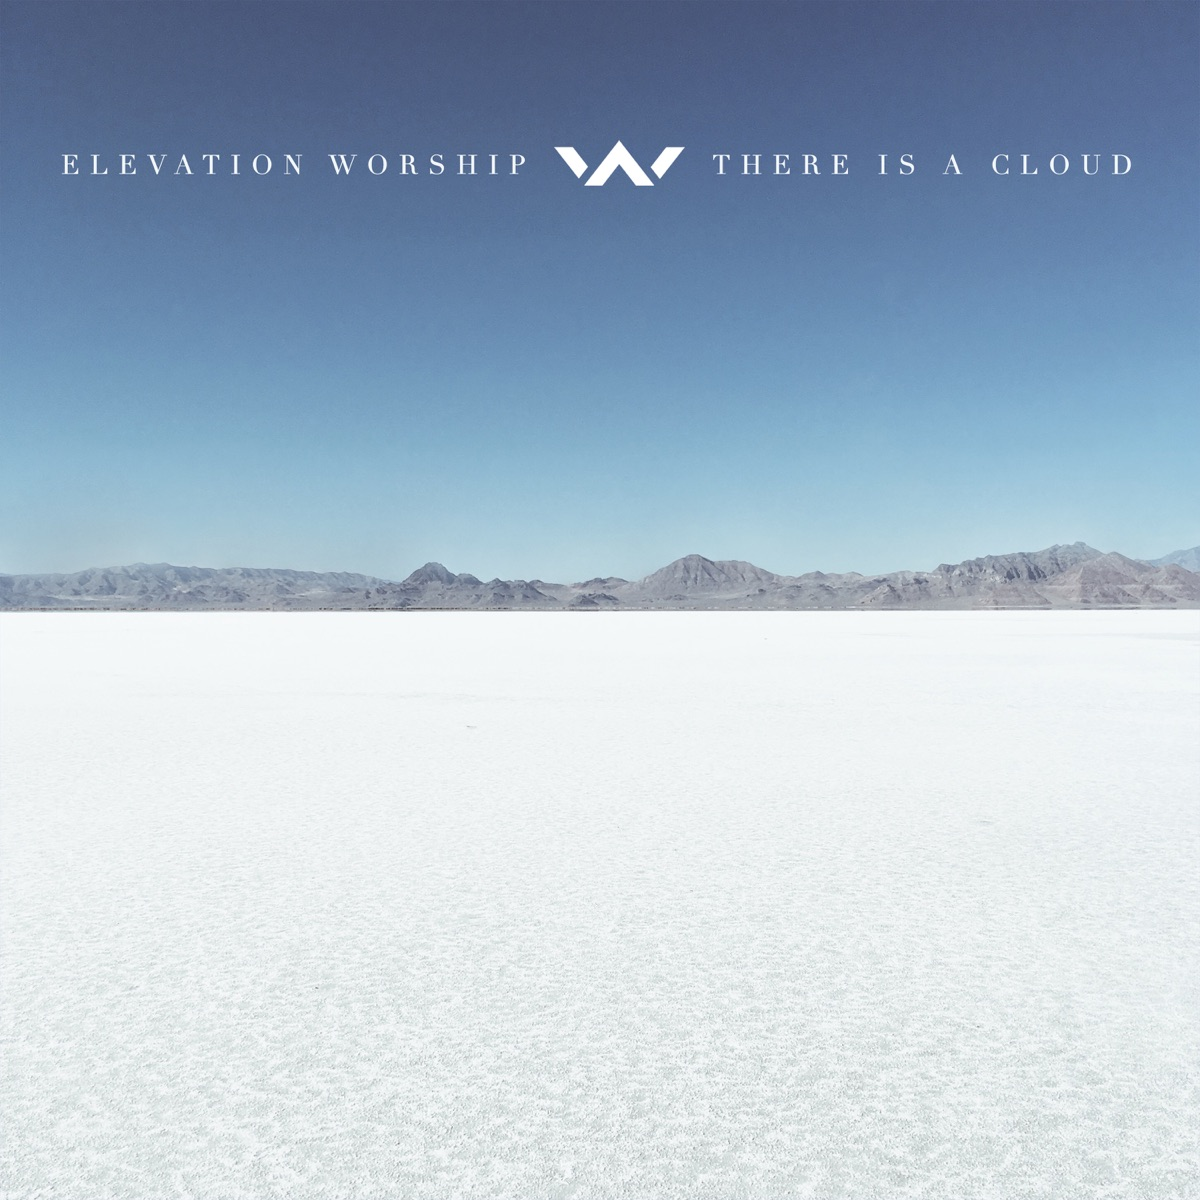 There Is a Cloud Live Elevation Worship CD cover